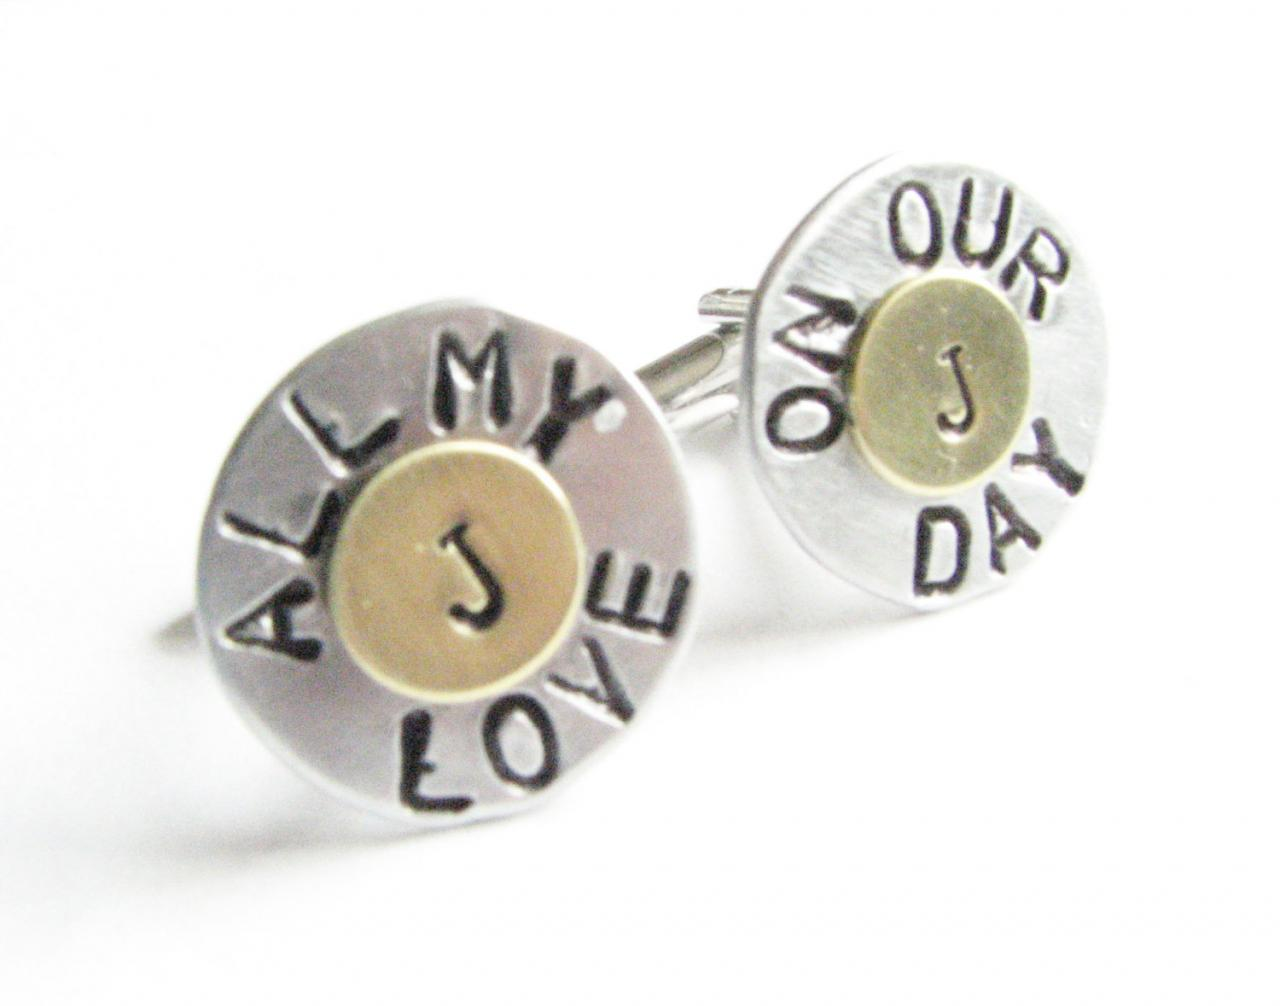 Hand Stamped Wedding Cufflinks Initial personalized Engraved gift for him Men Father Wedding mixed metal cuff links